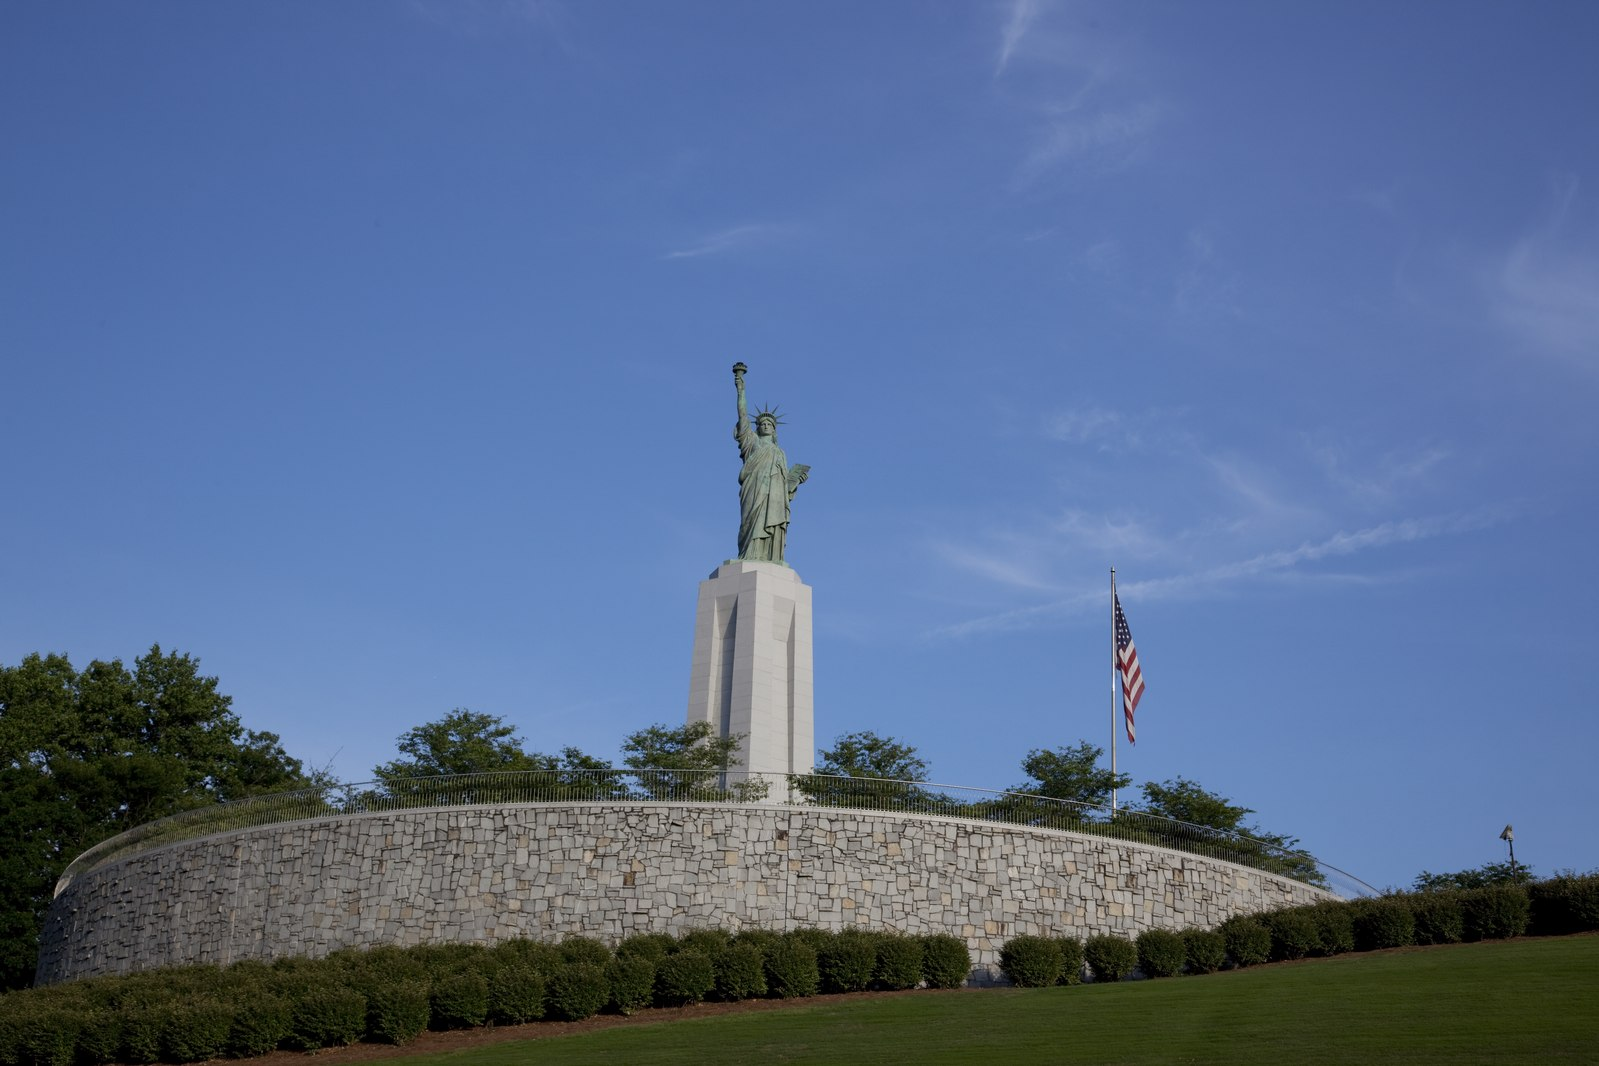 Alabama's Lady Liberty in Liberty Park, Vestavia Hills. While the state celebrates Lady Liberty, it appears to be less interested in individual women's freedom. Carol M. Highsmith/Library of Congress.